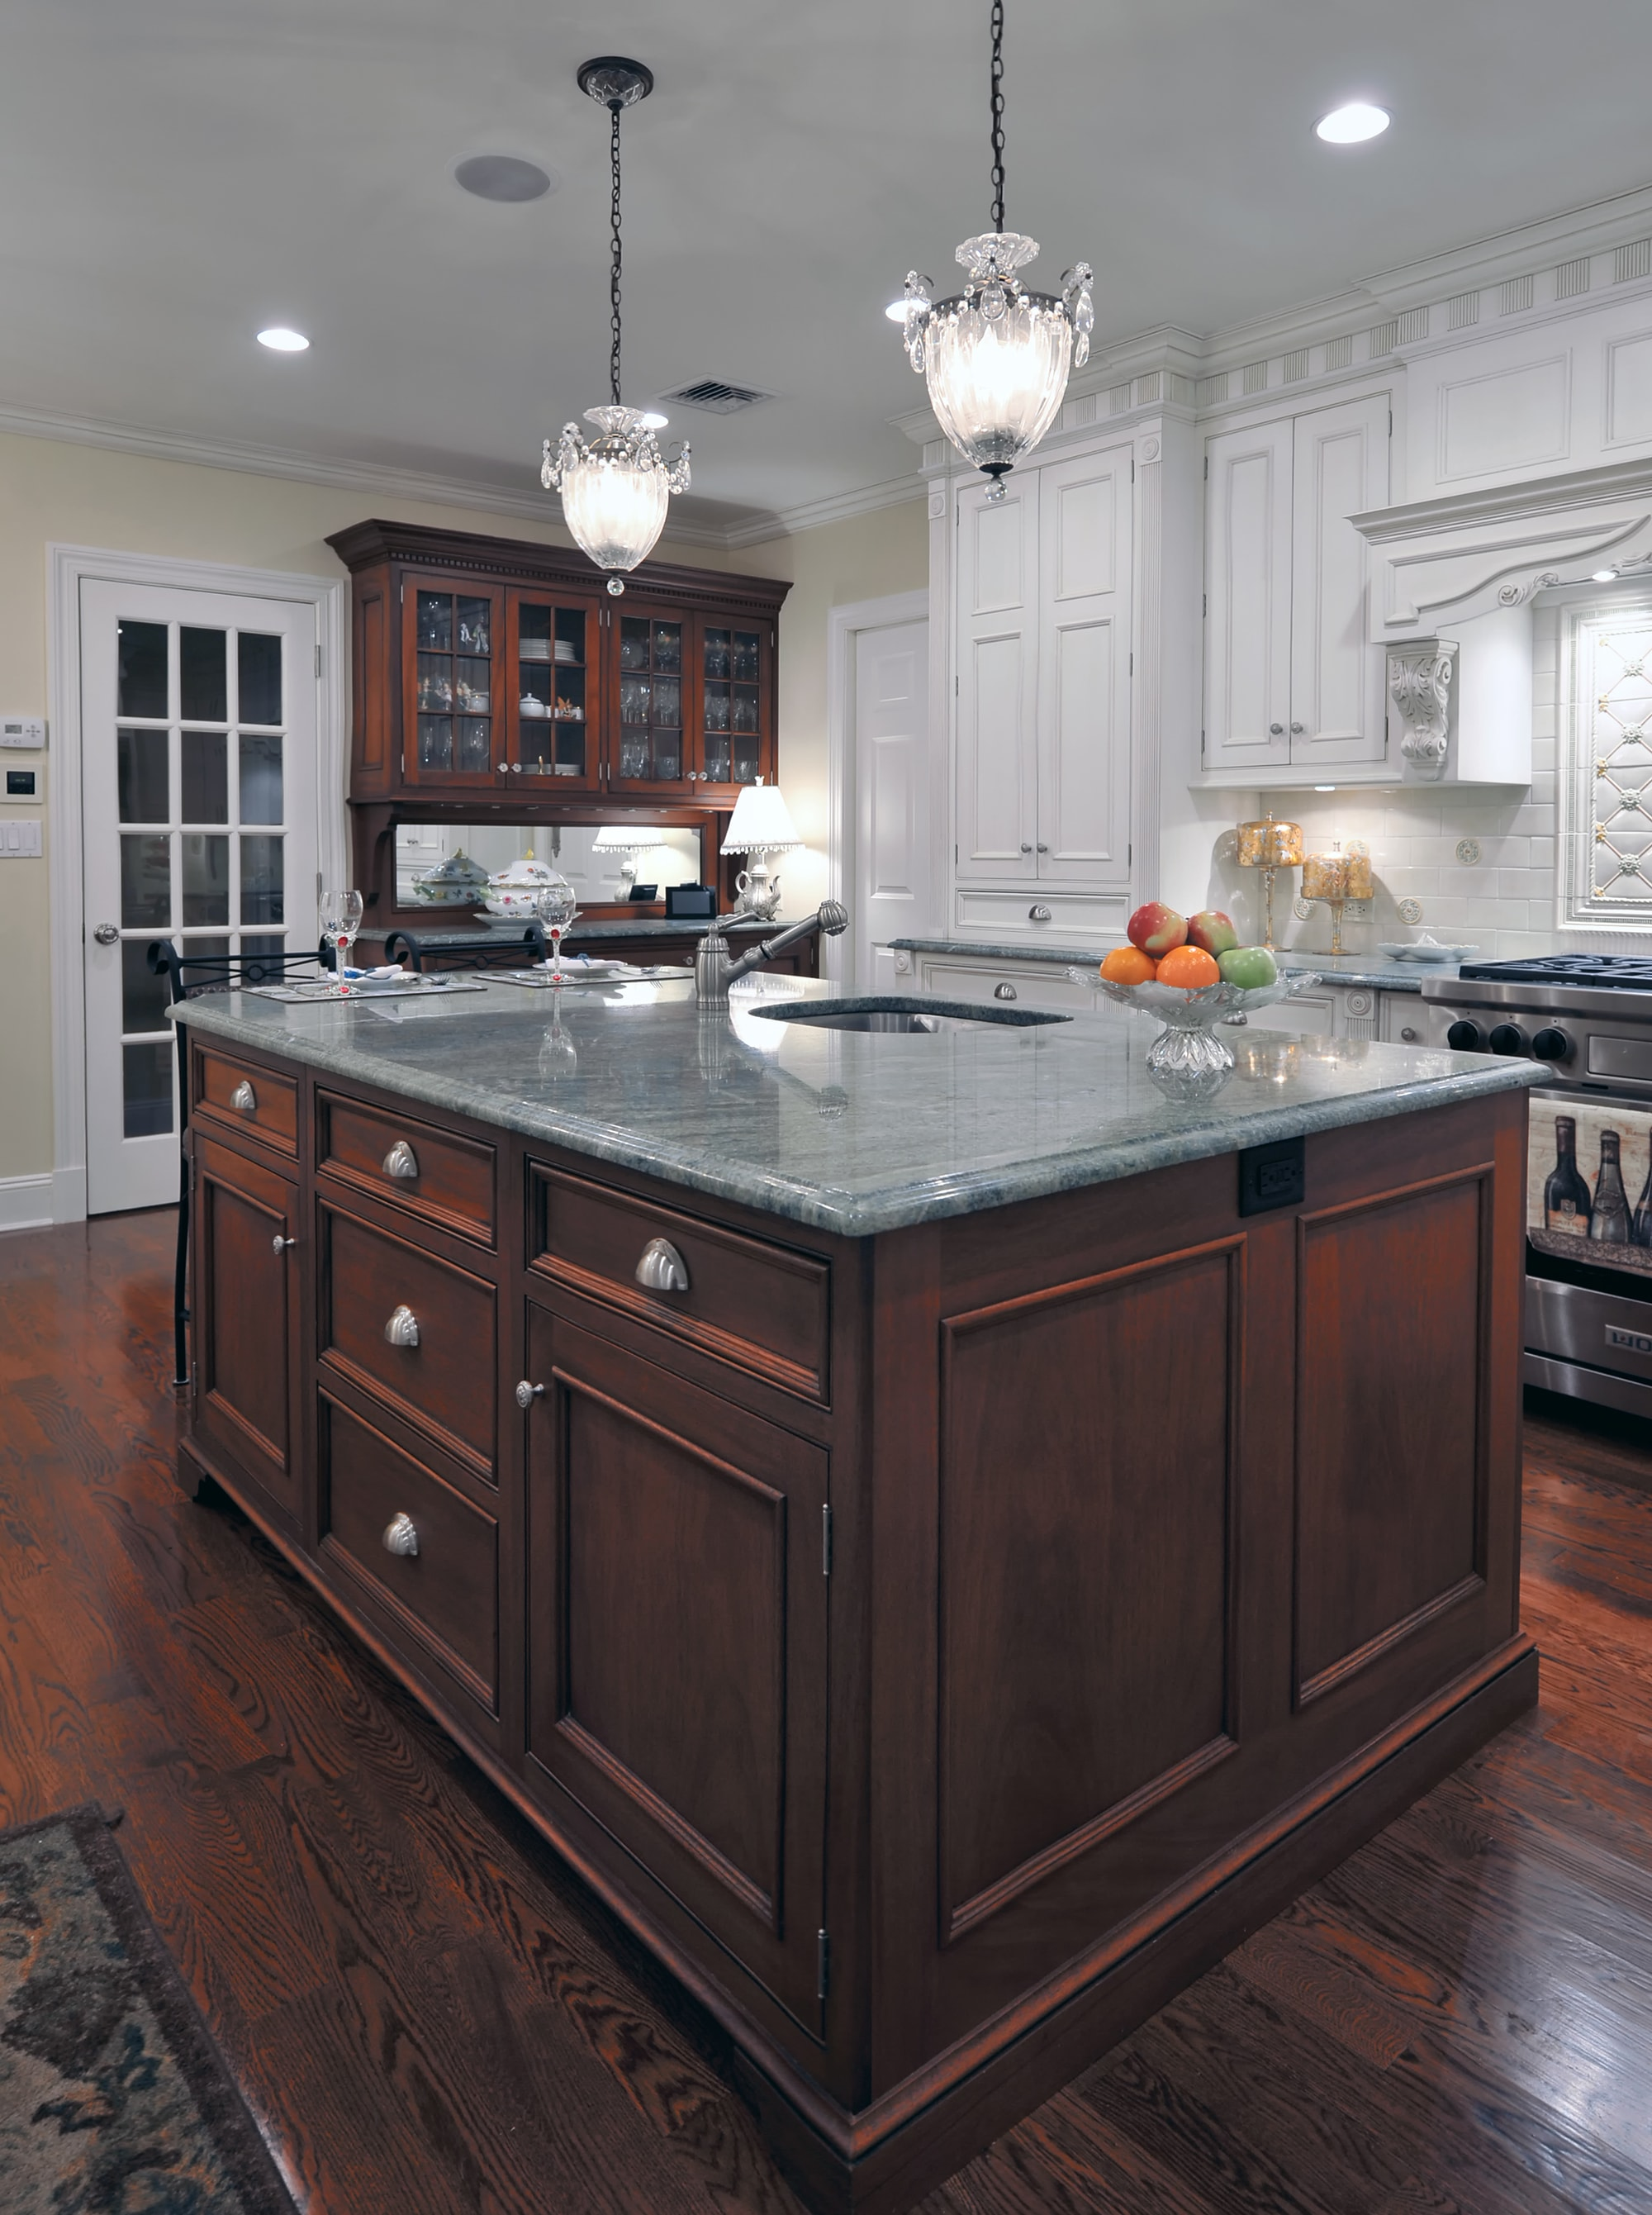 Traditional style kitchen with laminated wood floors